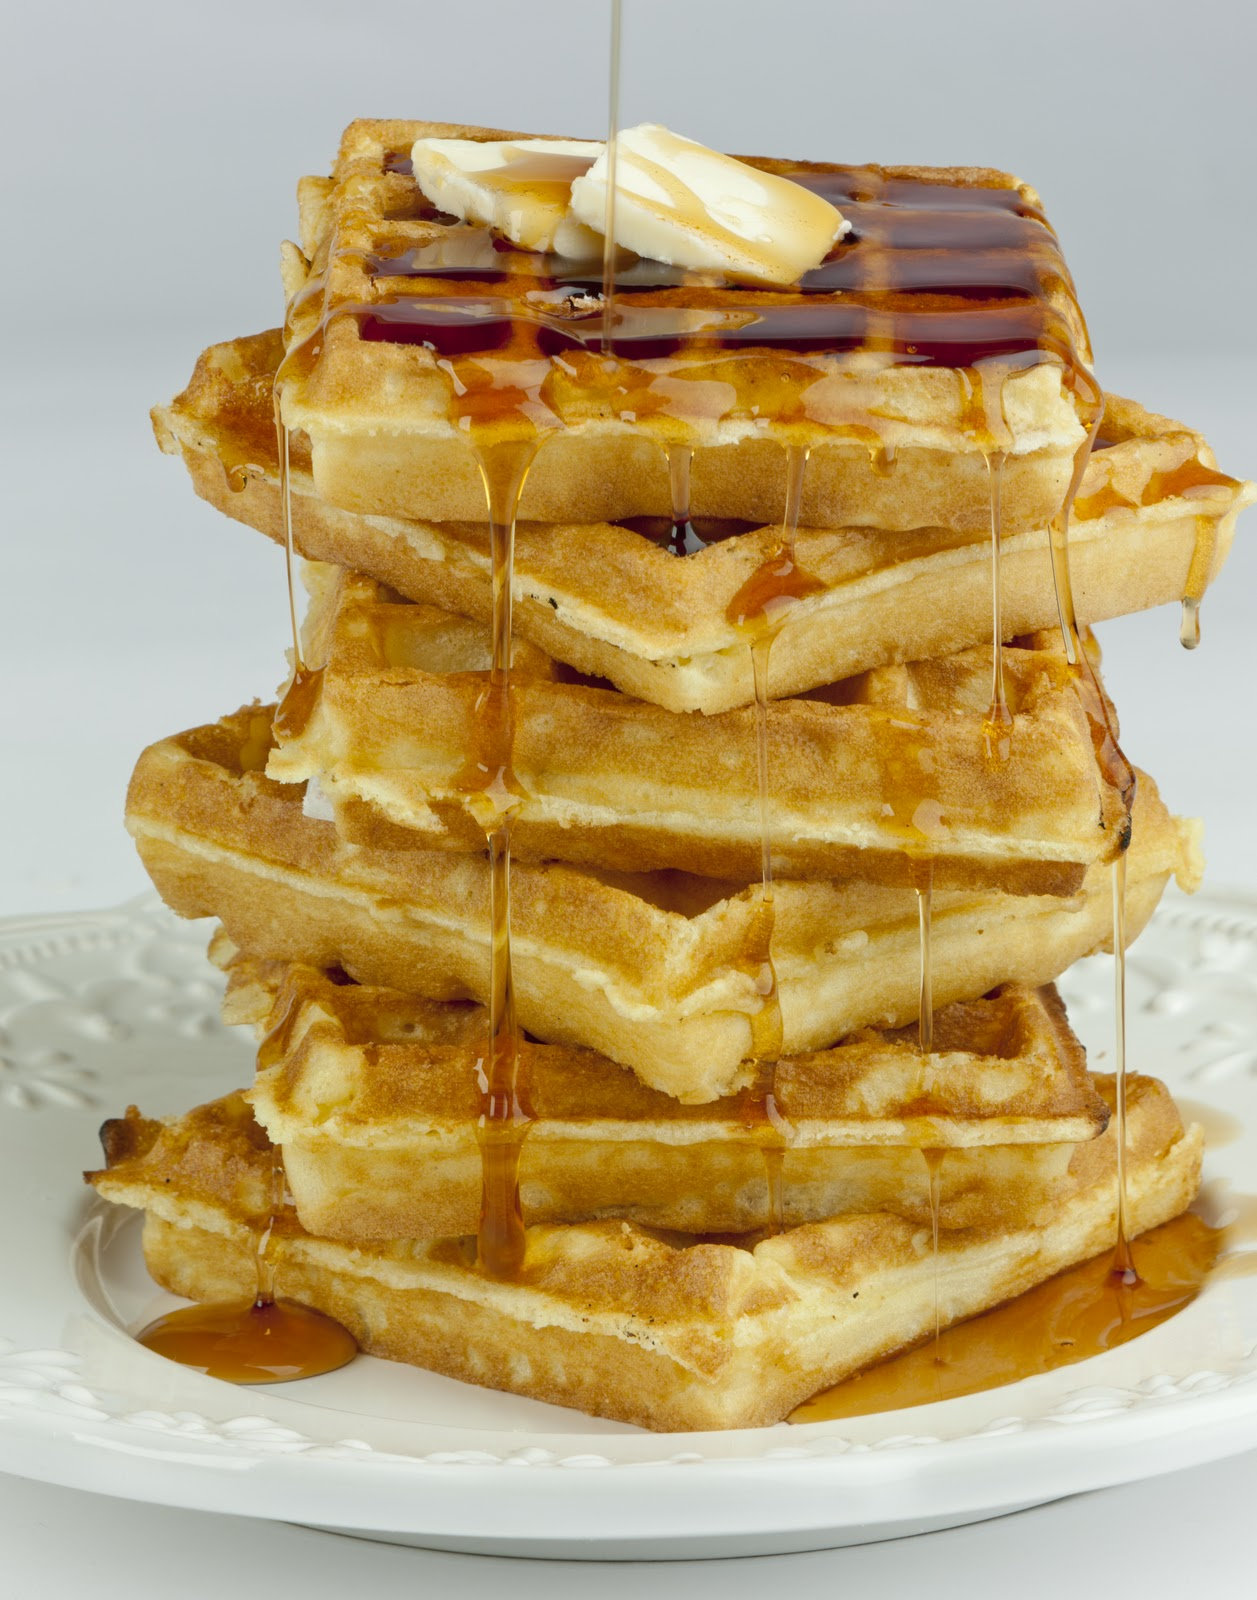 even more awesome than this stack of delicious waffles. And waffles ...